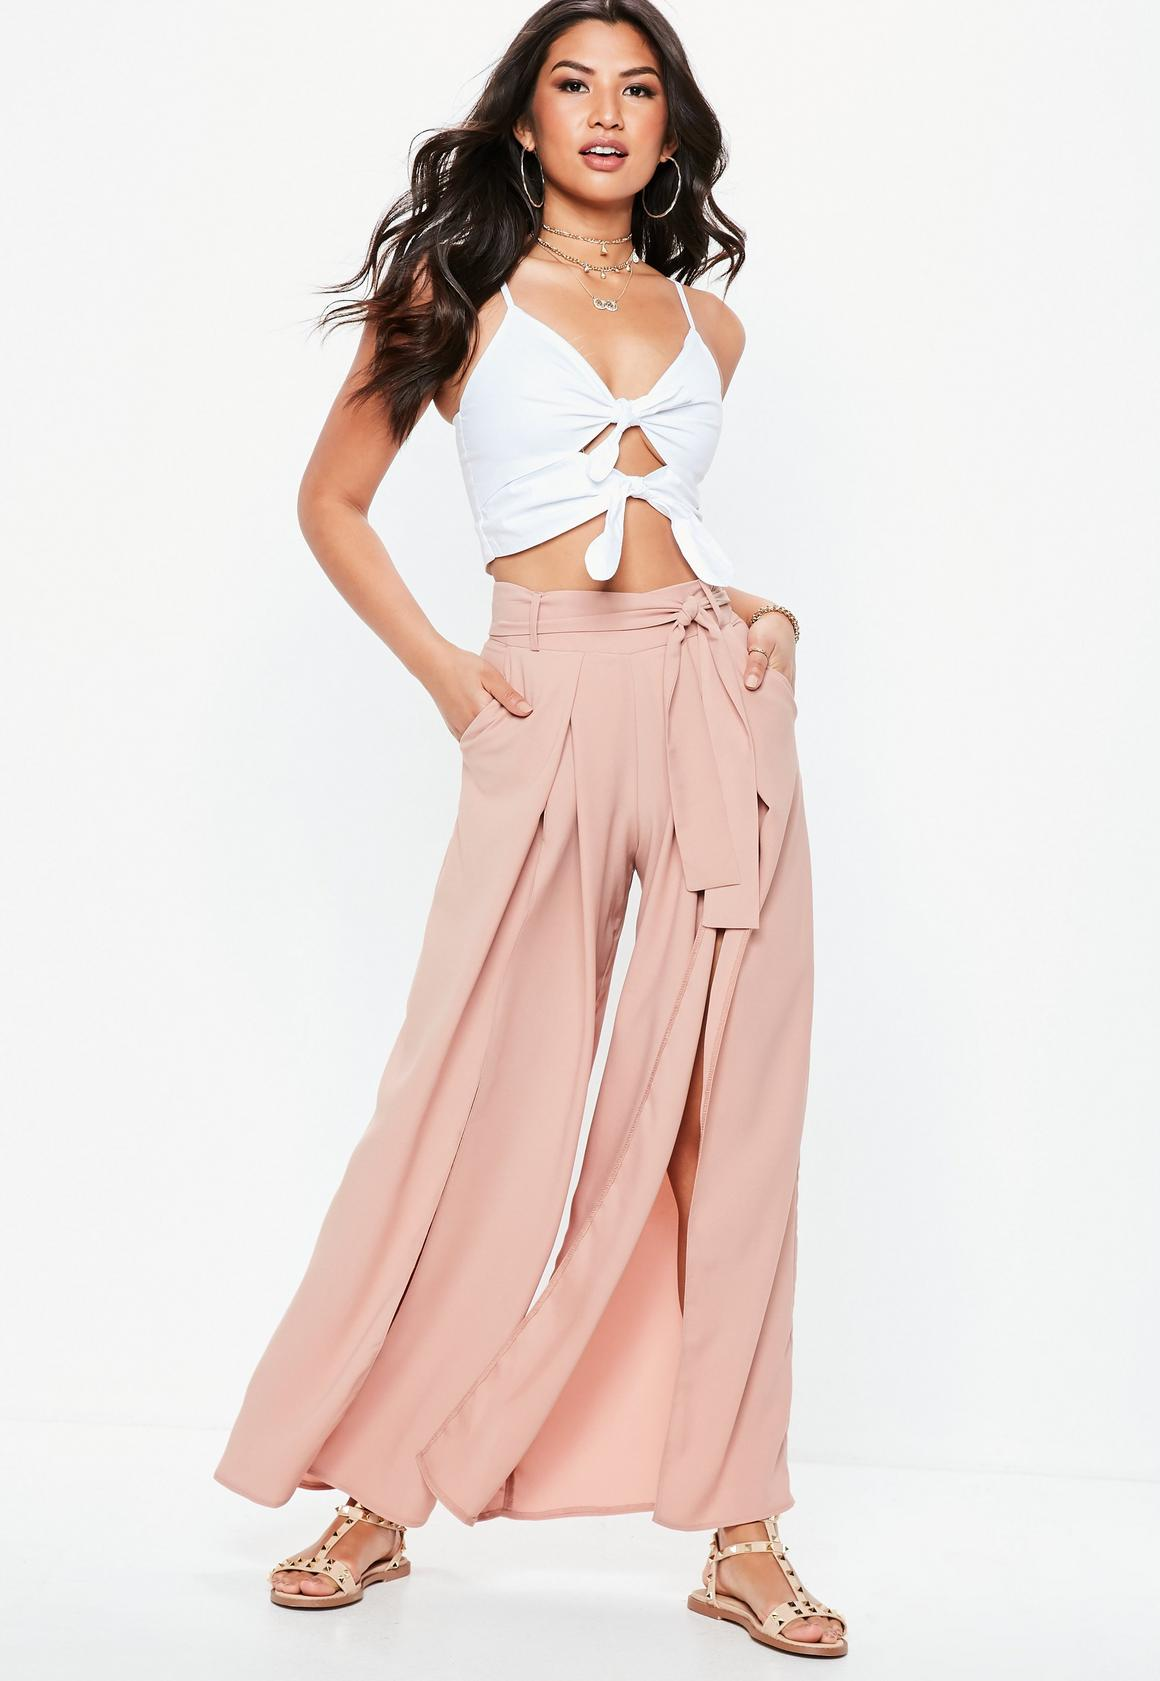 fec6baa578f4 ... Belted Wide Leg Pants. Hover to Zoom